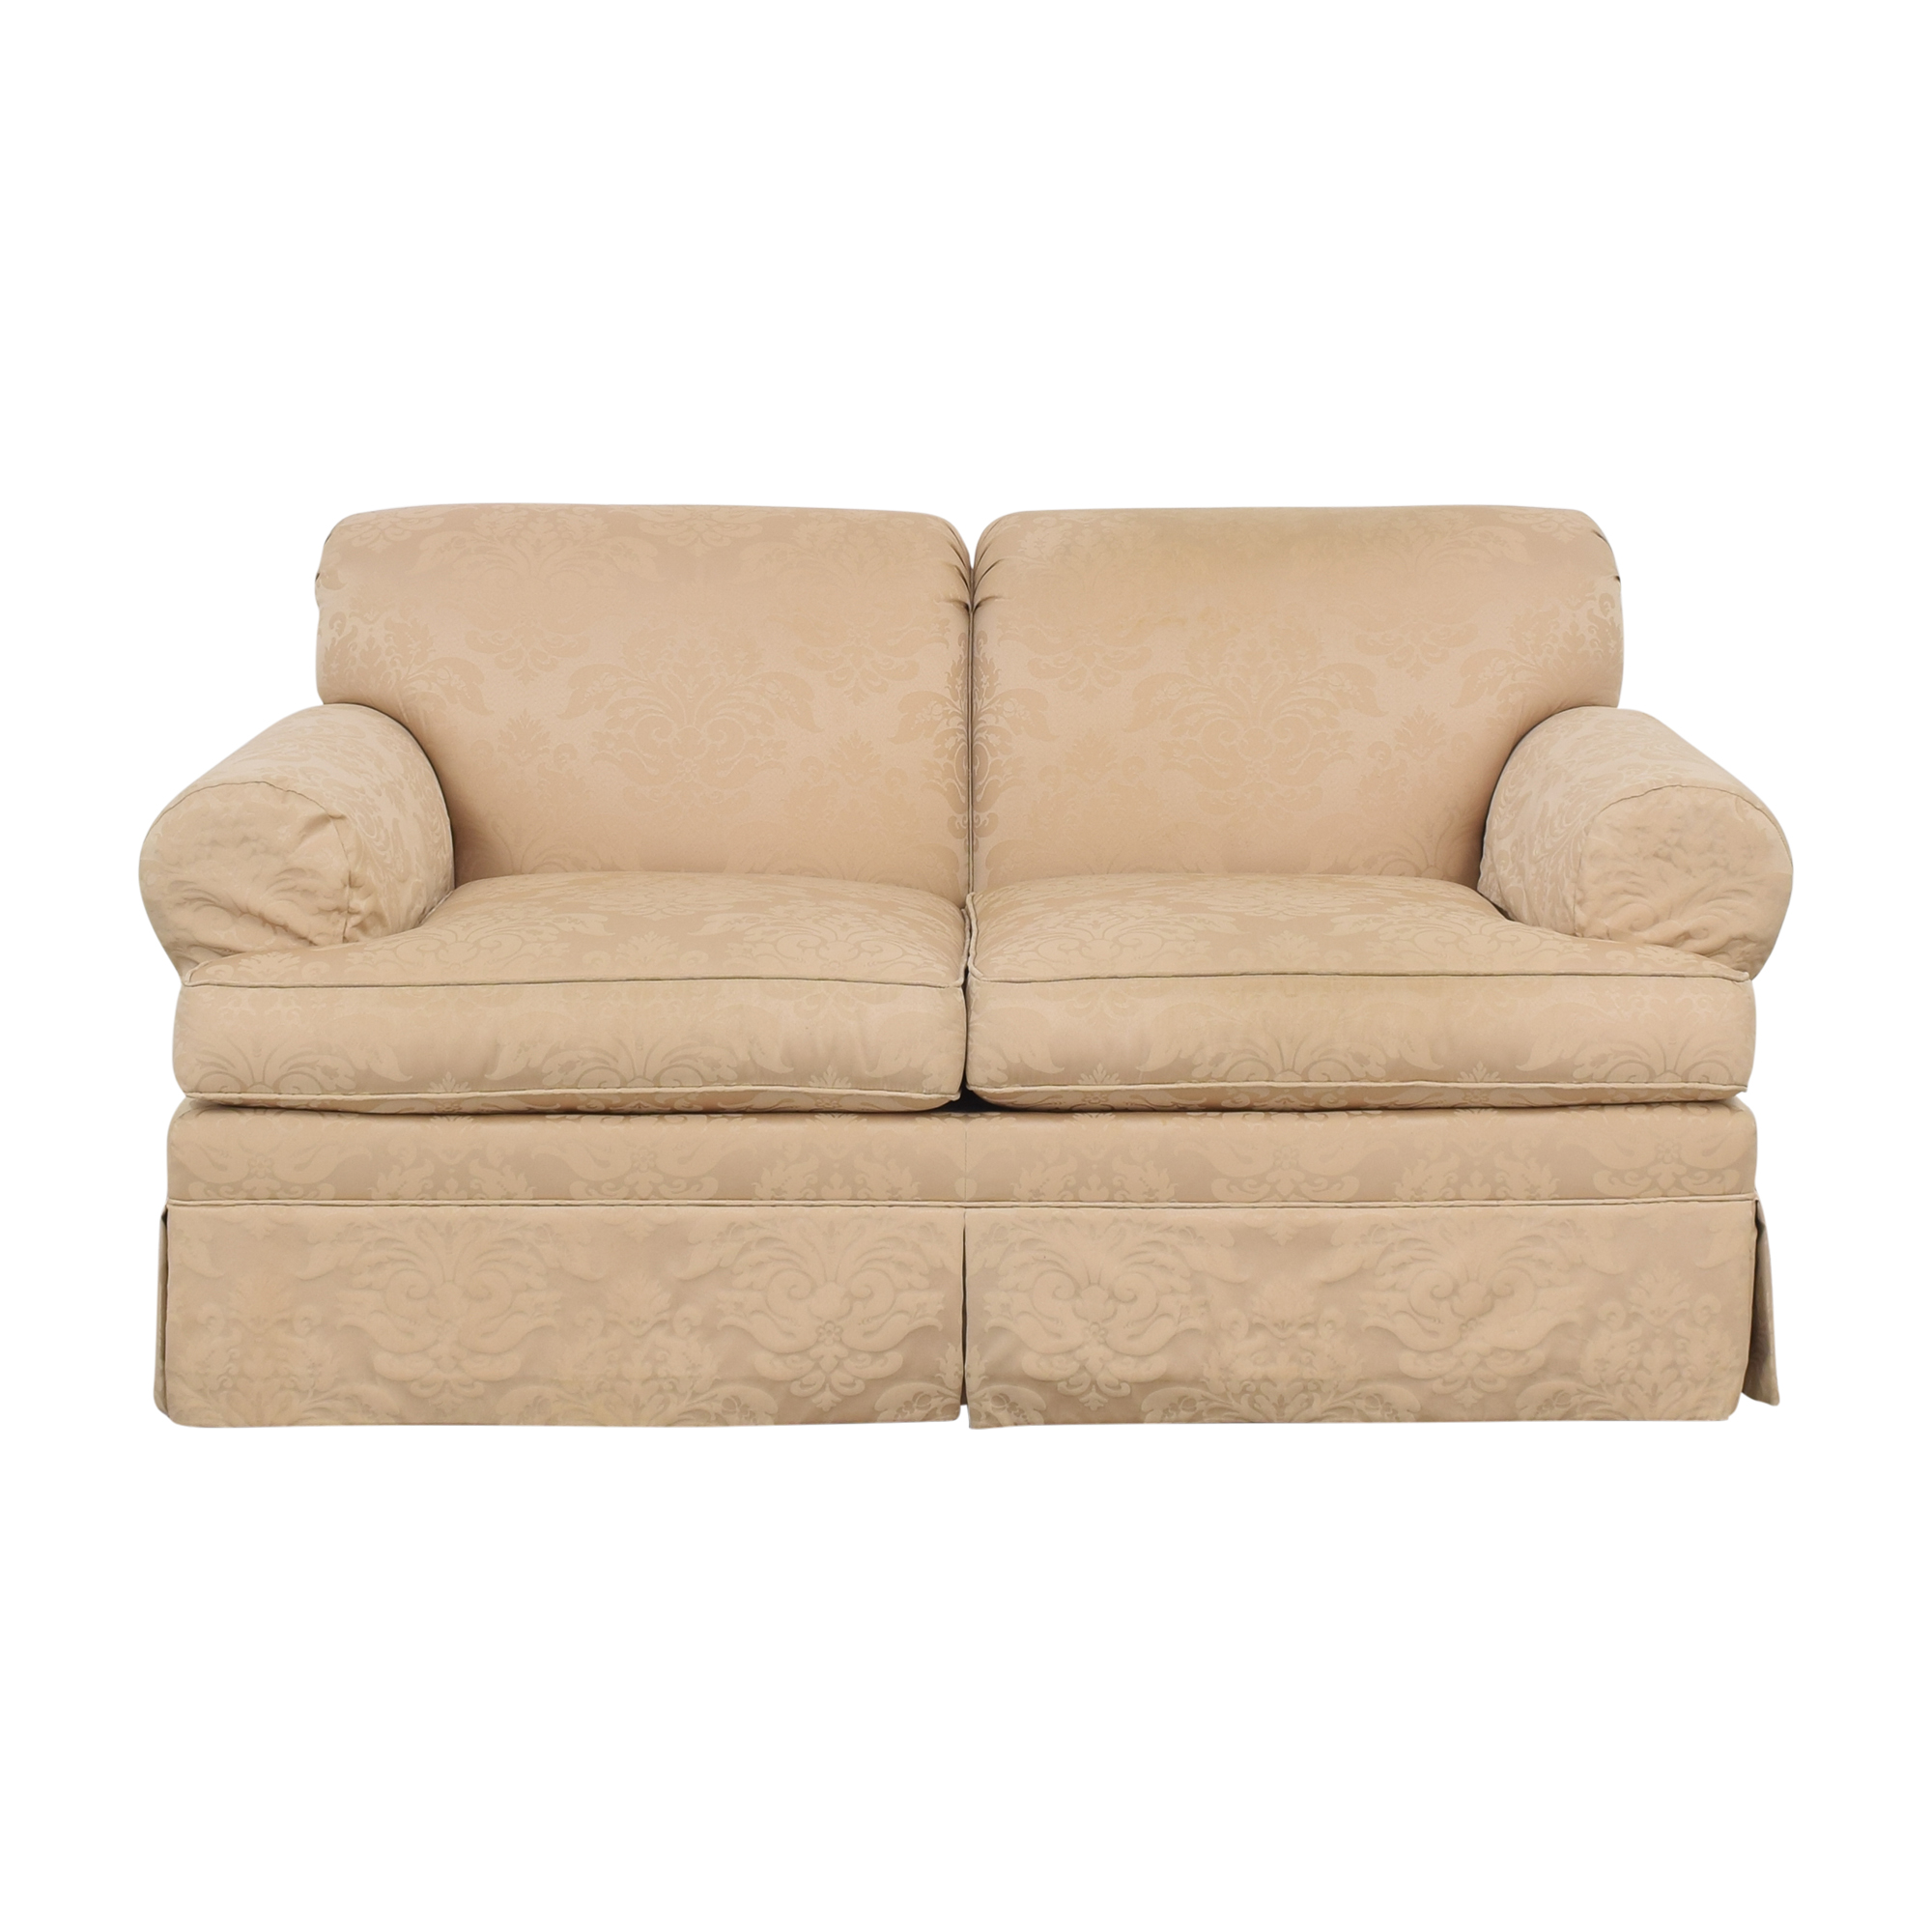 buy Ethan Allen Ethan Allen Roll Arm Loveseat online